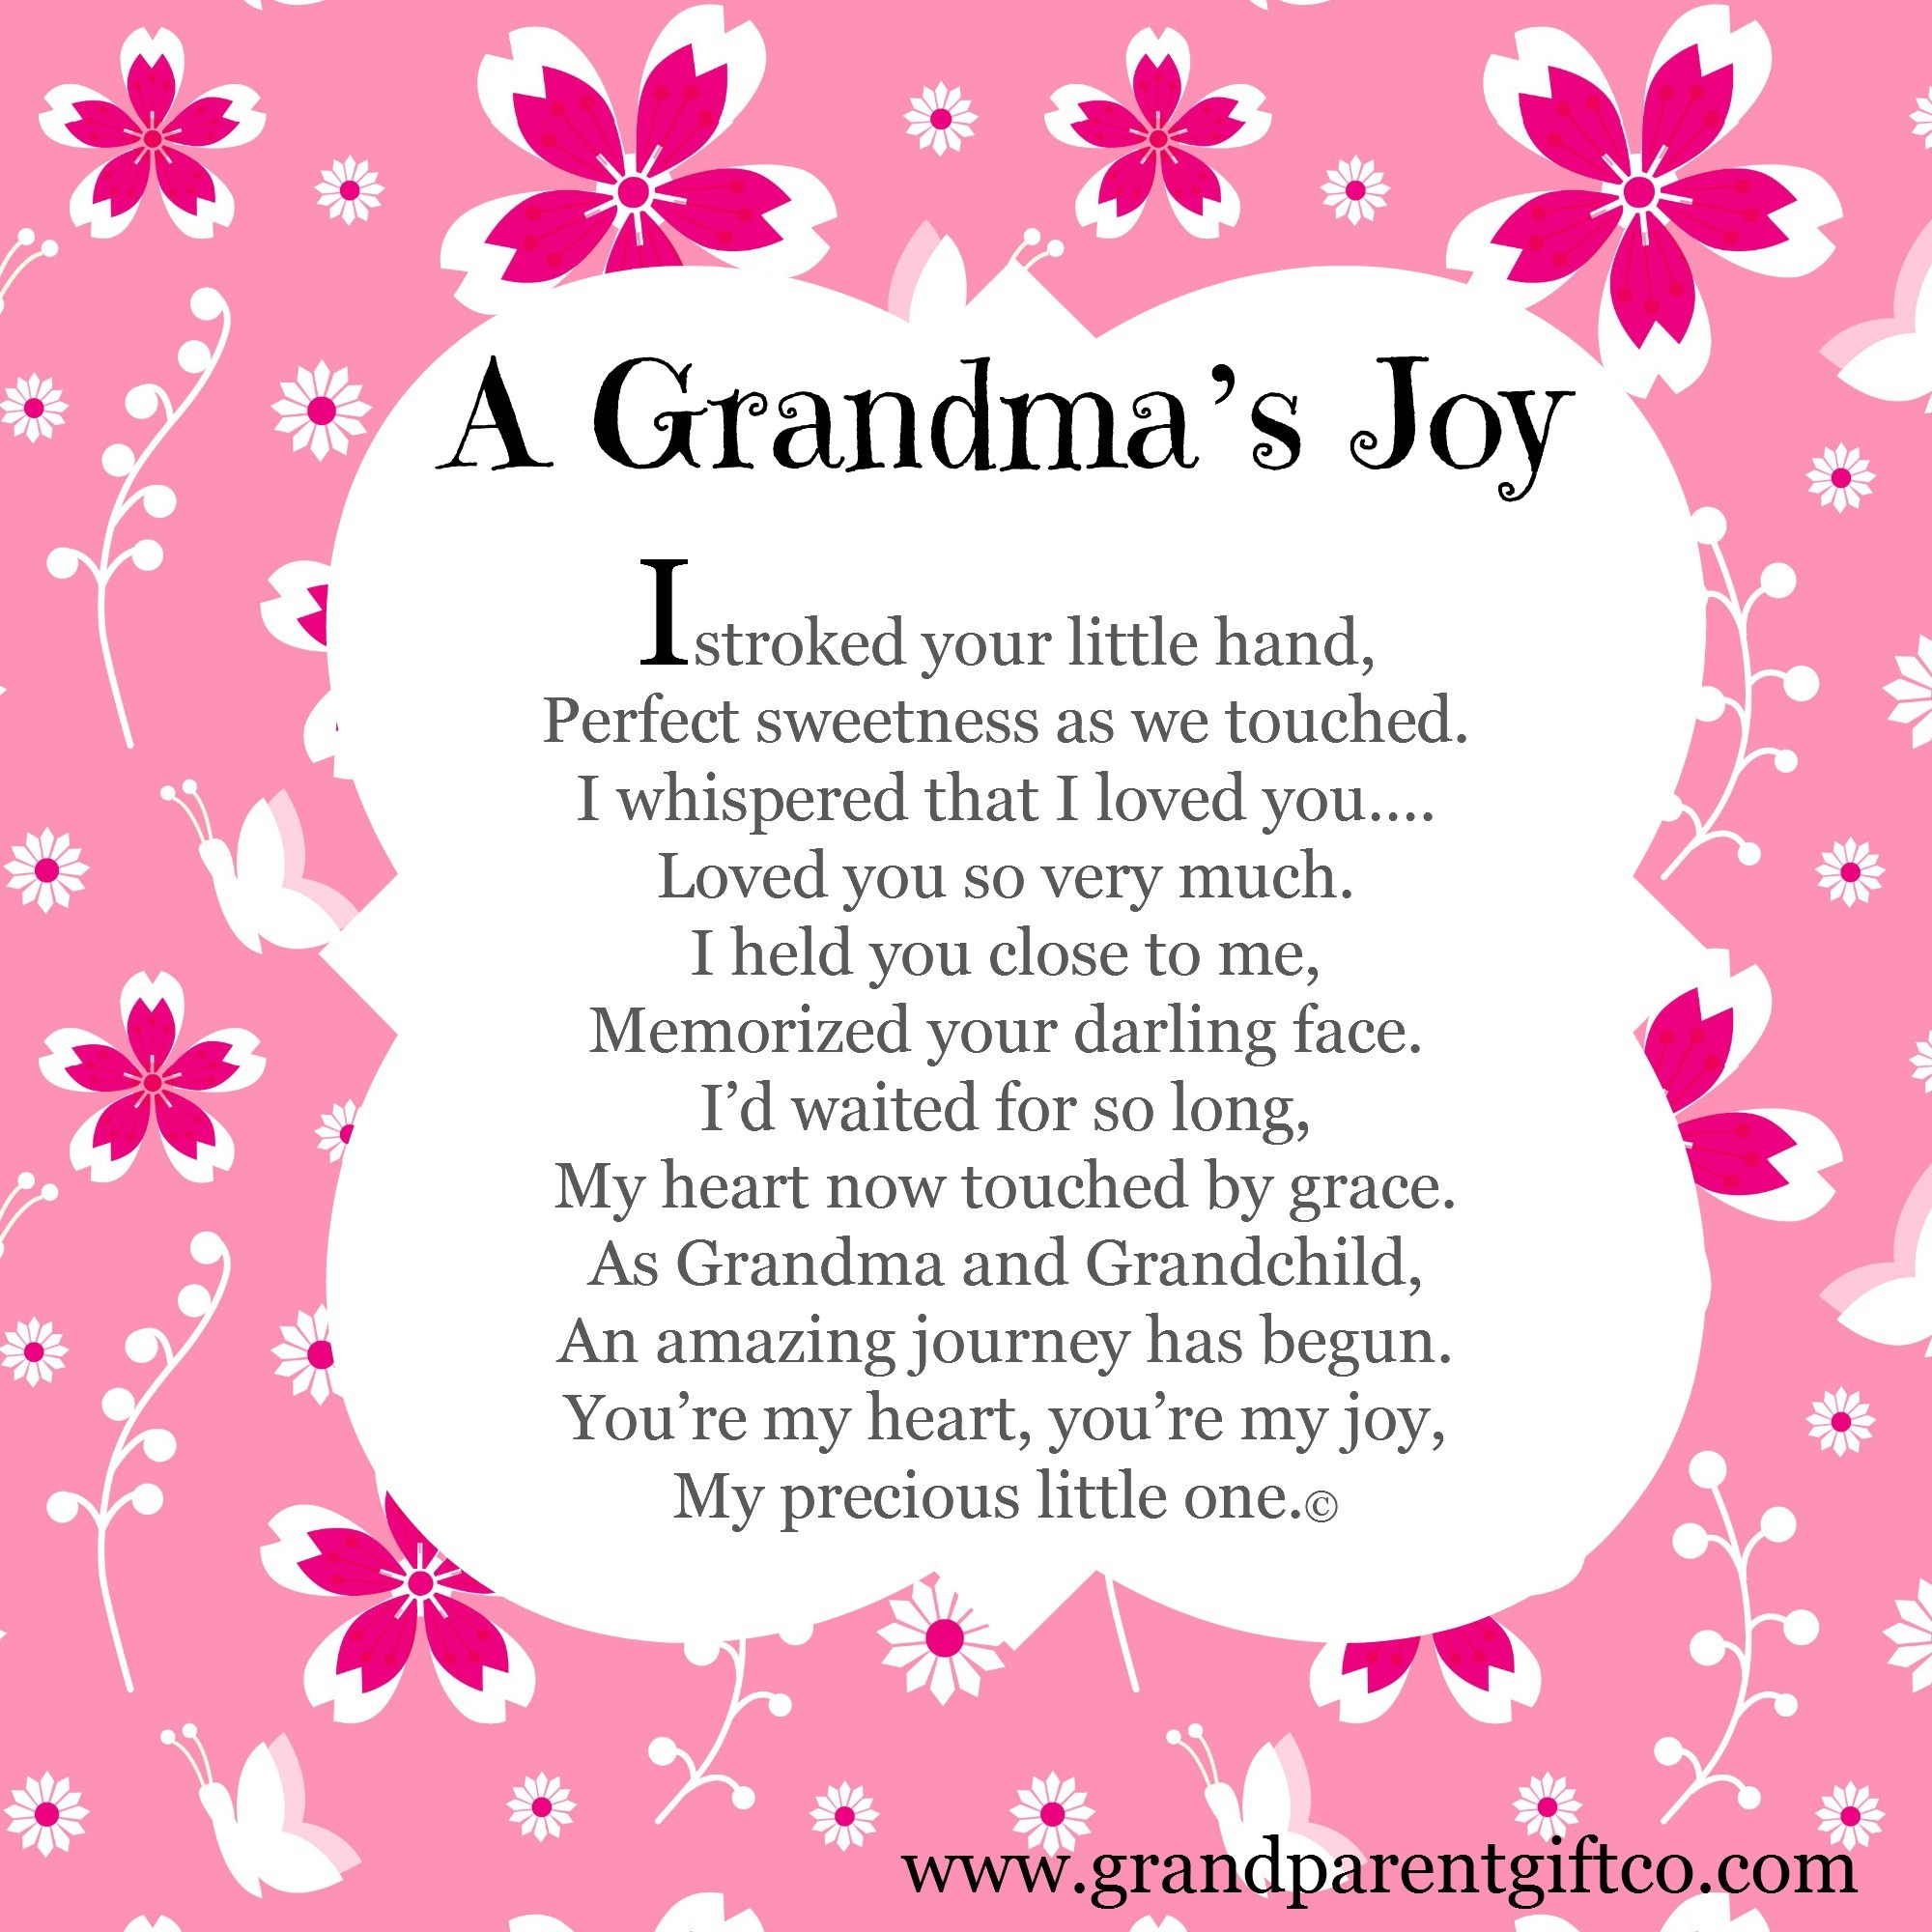 happy birthday granddaughter quotes ; happy-birthday-grandma-quotes-fresh-i-love-my-granddaughter-quotes-of-happy-birthday-grandma-quotes